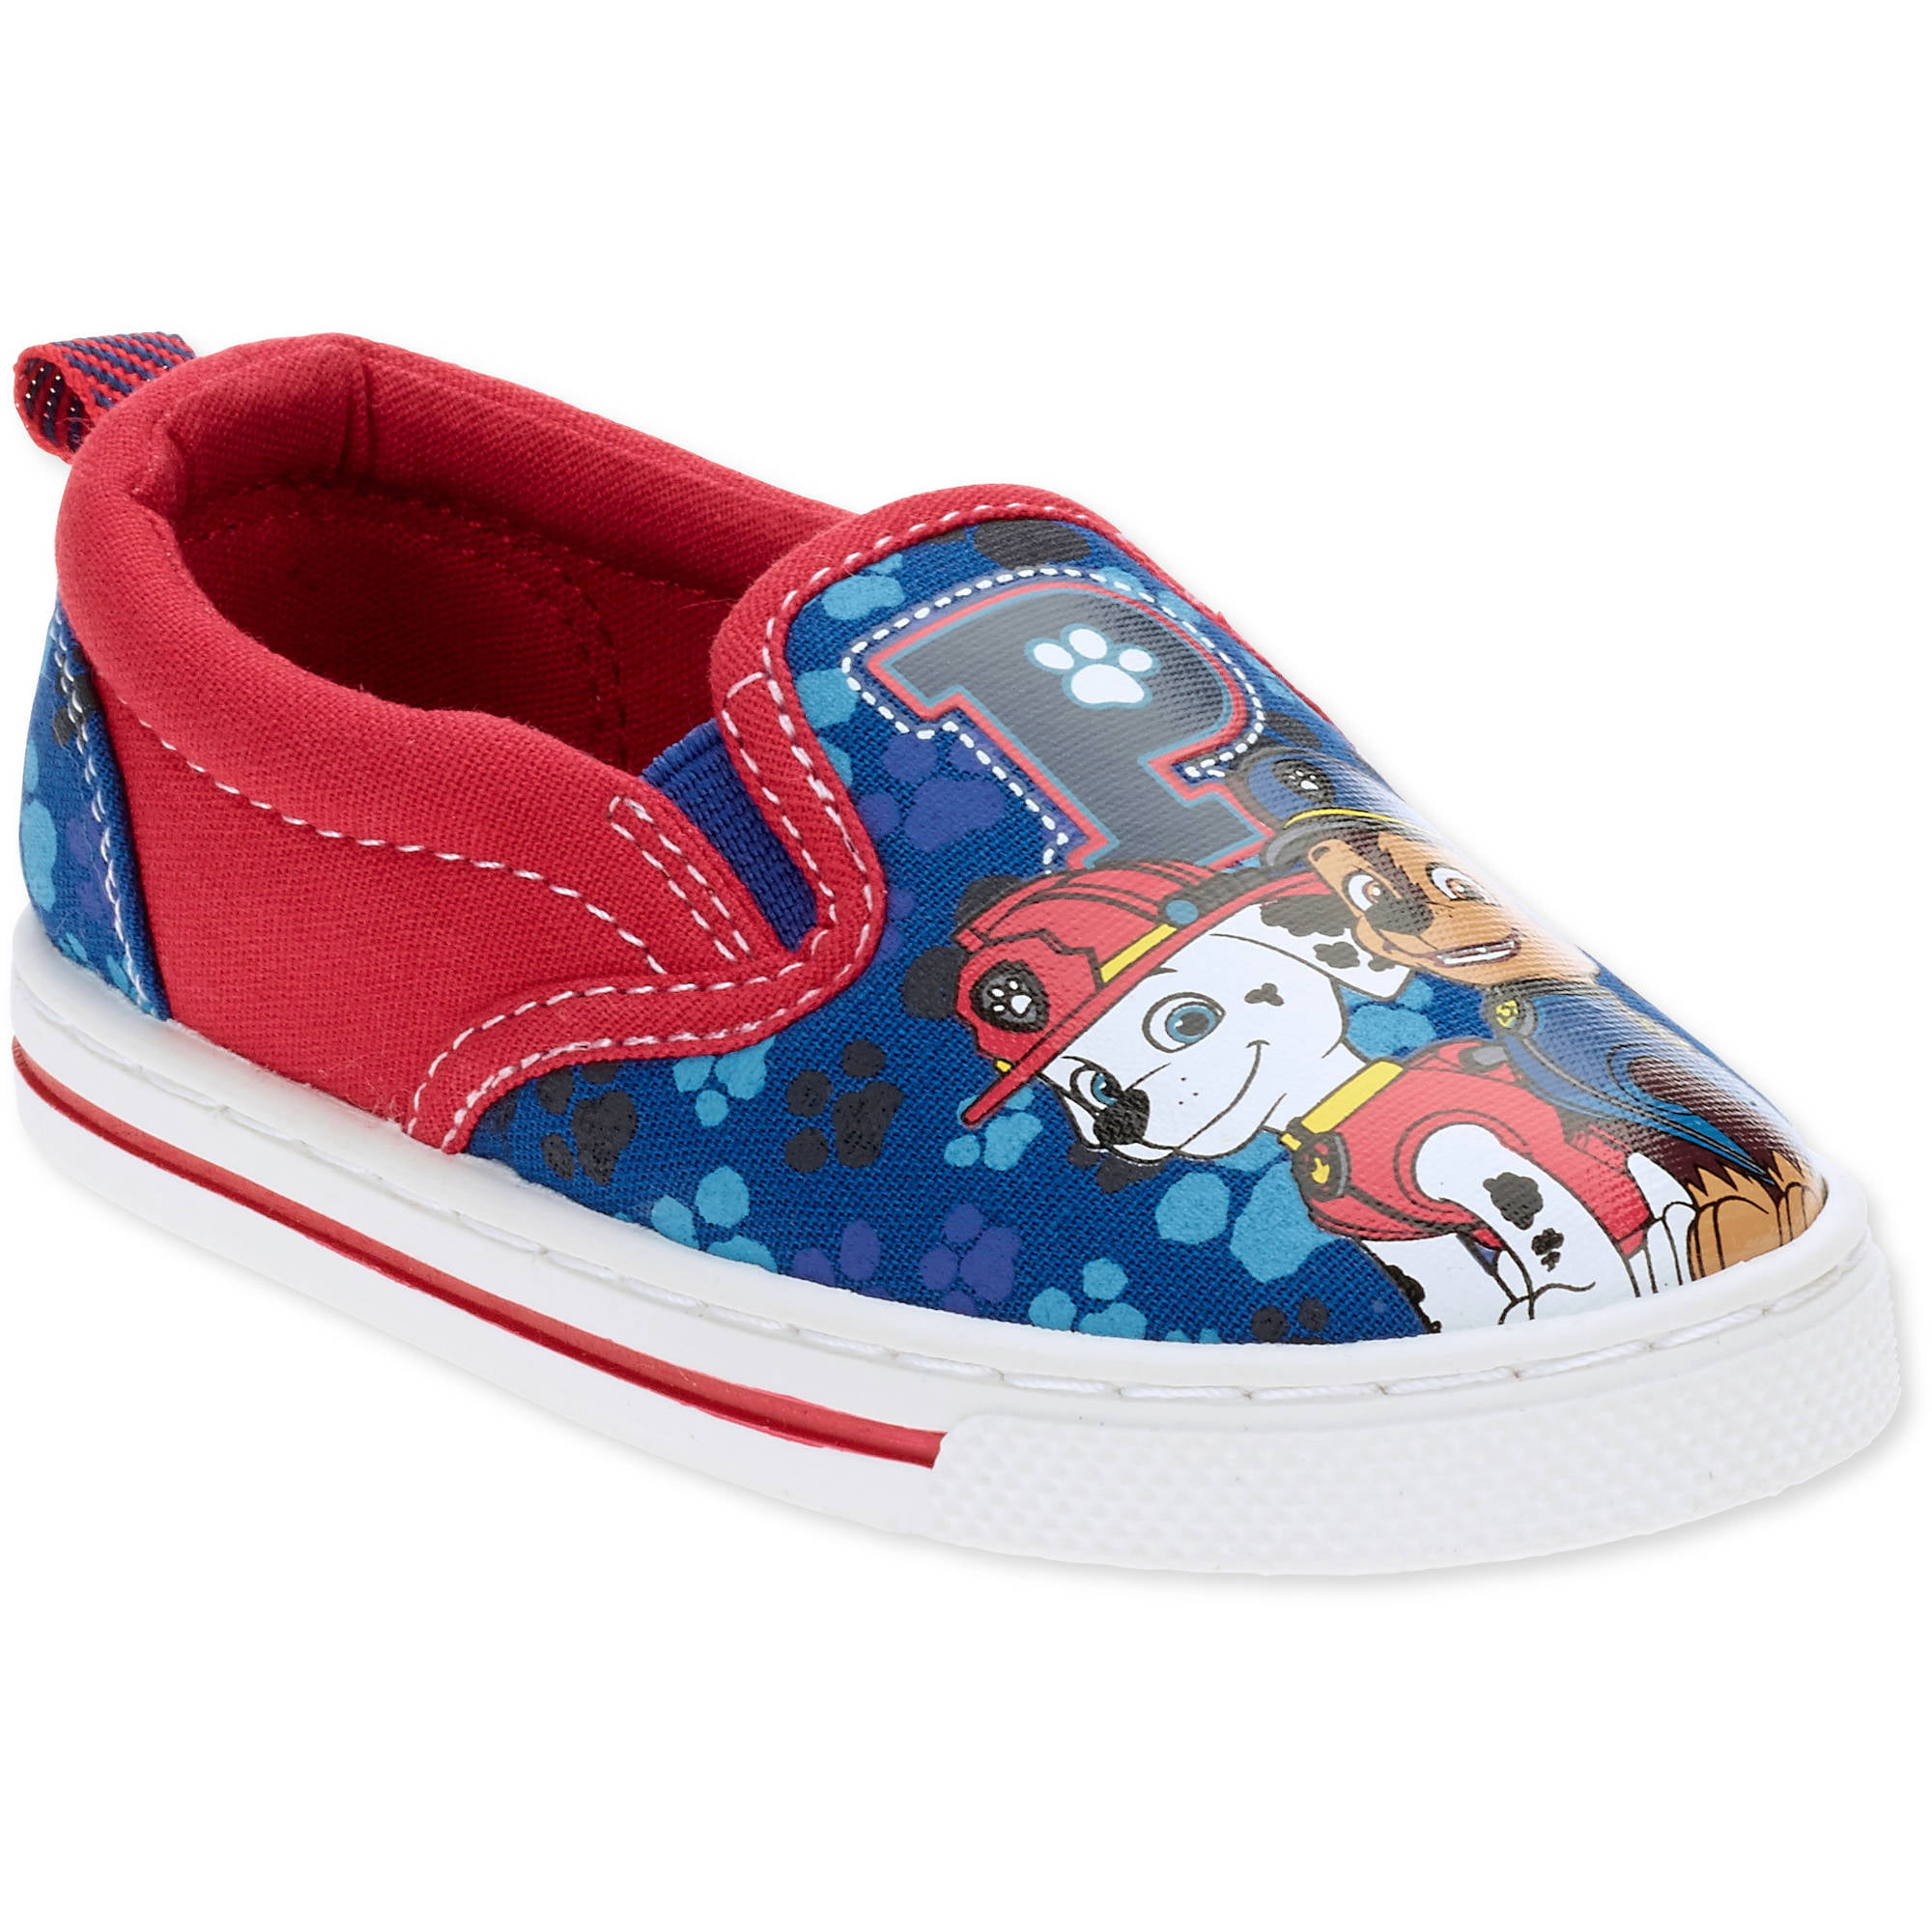 Paw Patrol Kids Shoes for Boys Sneaker Slip On Character Toddler Boy Shoes